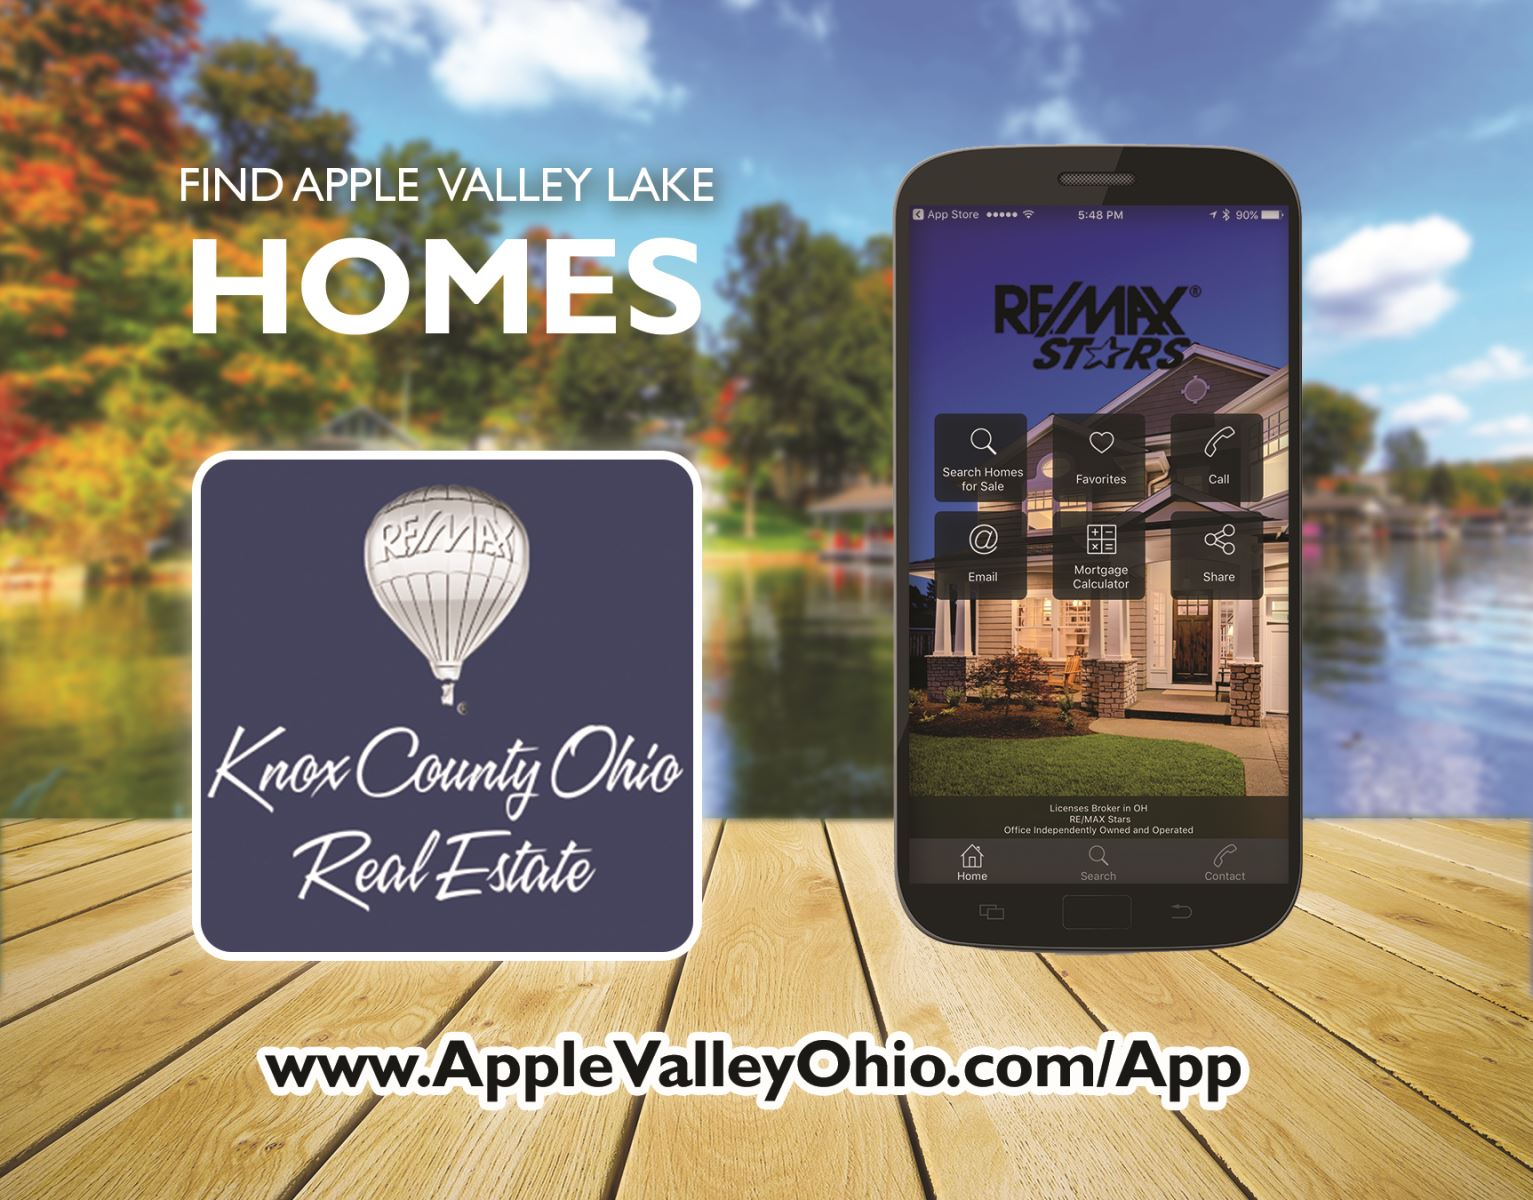 Apple Valley Lake Real Estate App